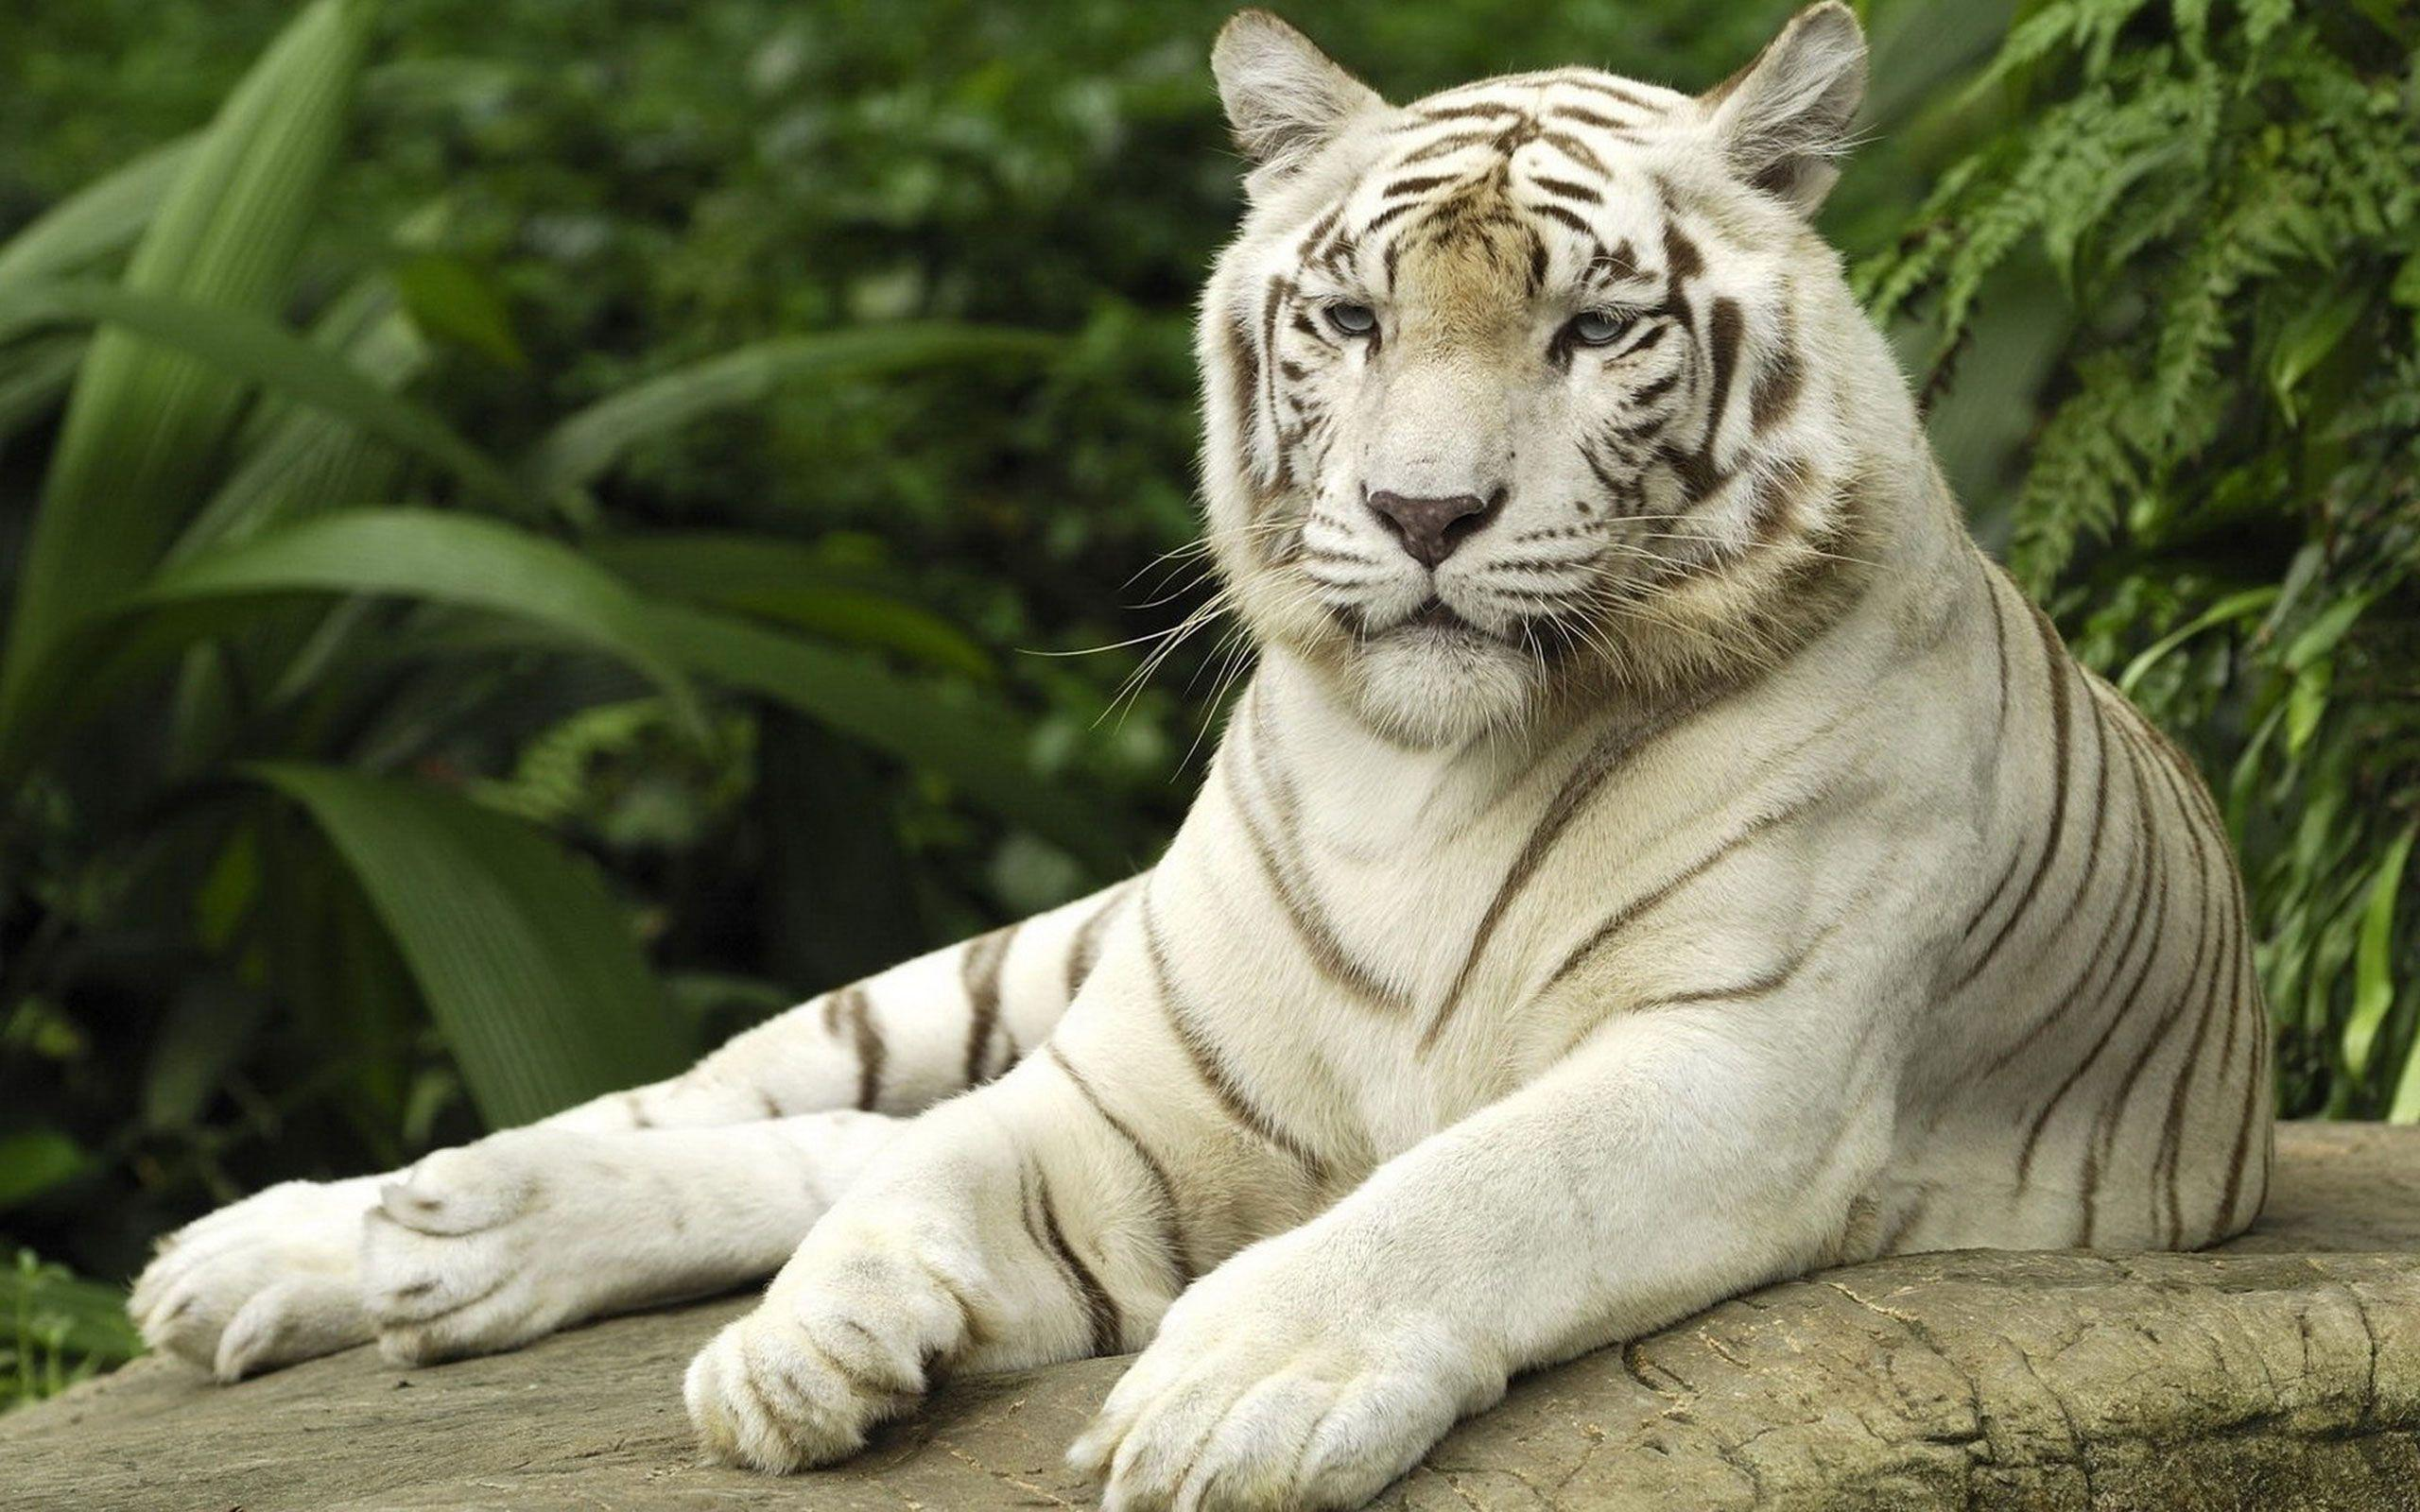 where can i find a essay about white tiger Easy science for kids white tiger facts for kids video - learn fun facts about animals a white tiger can weigh up to 300 kg and reach up to 3 metres in length.